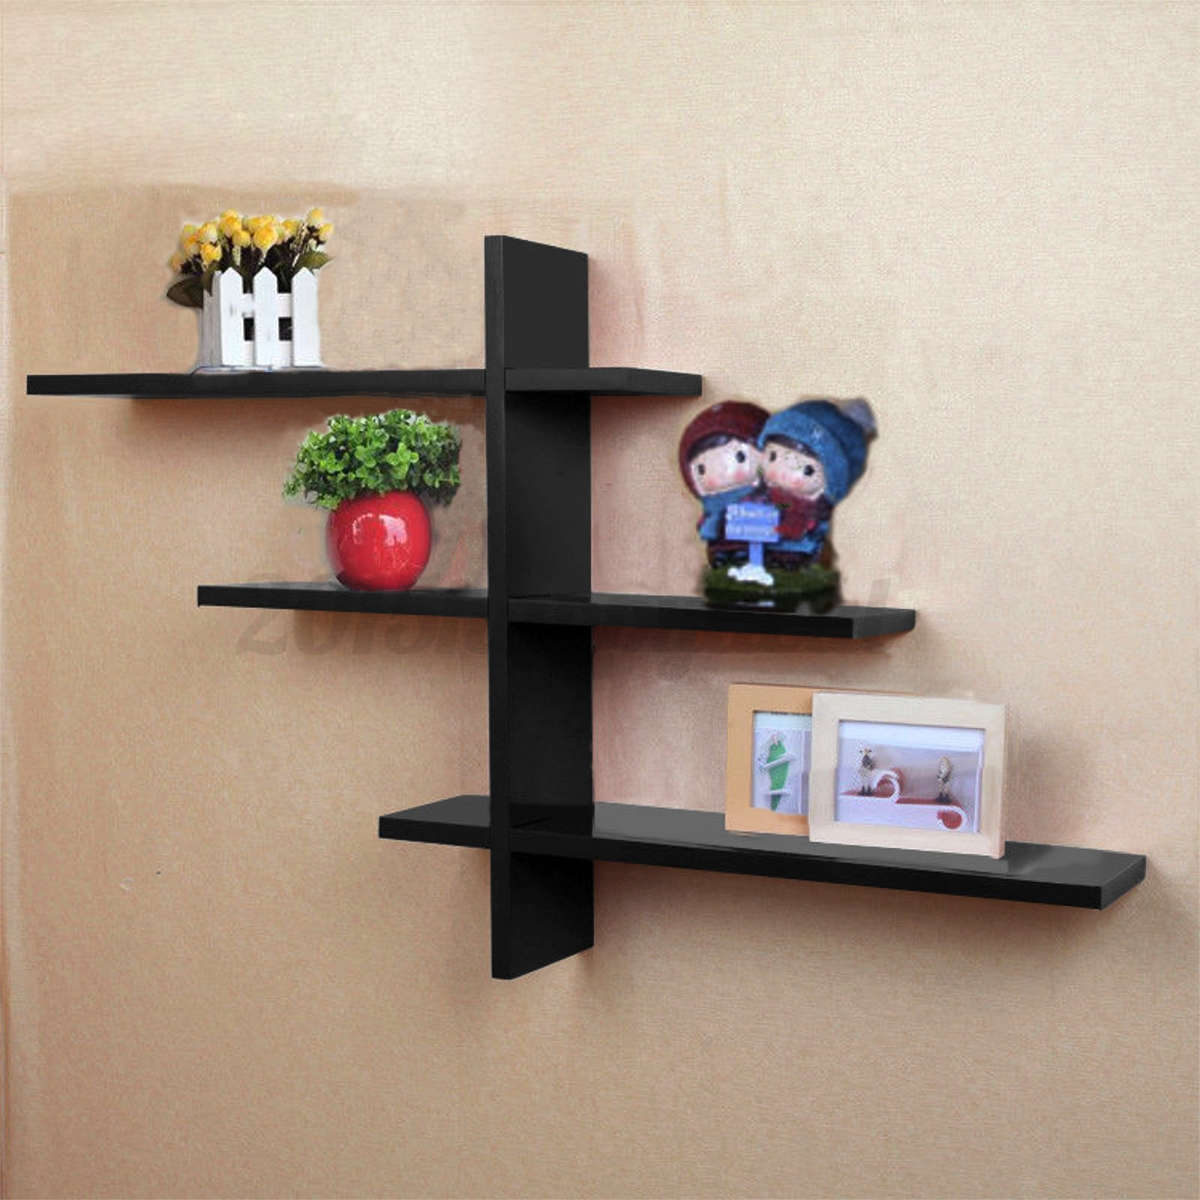 heavy duty t shape floating wall mount shelves book dvd storage shelf display uk ebay. Black Bedroom Furniture Sets. Home Design Ideas